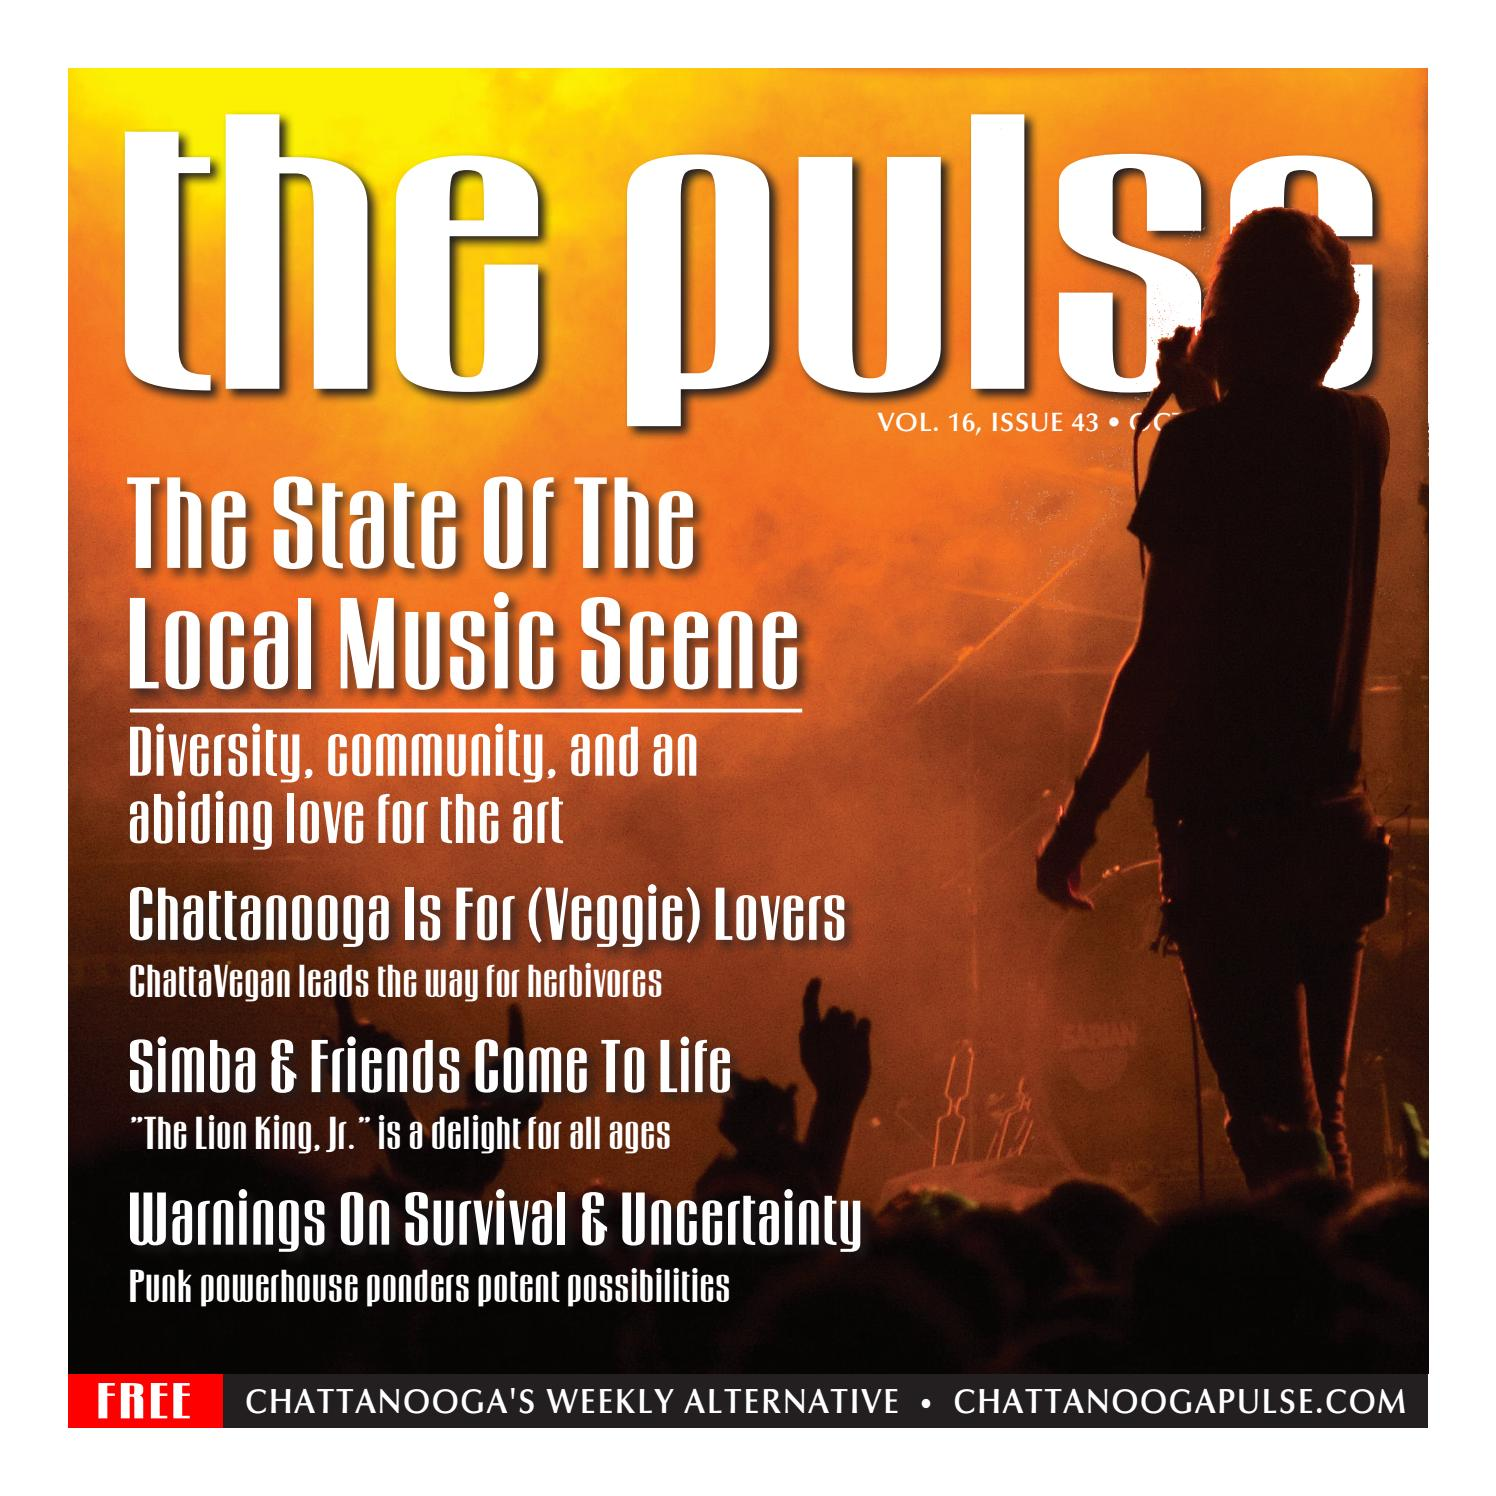 The Pulse 16 43 October 24 2019 By Brewer Media Group Issuu